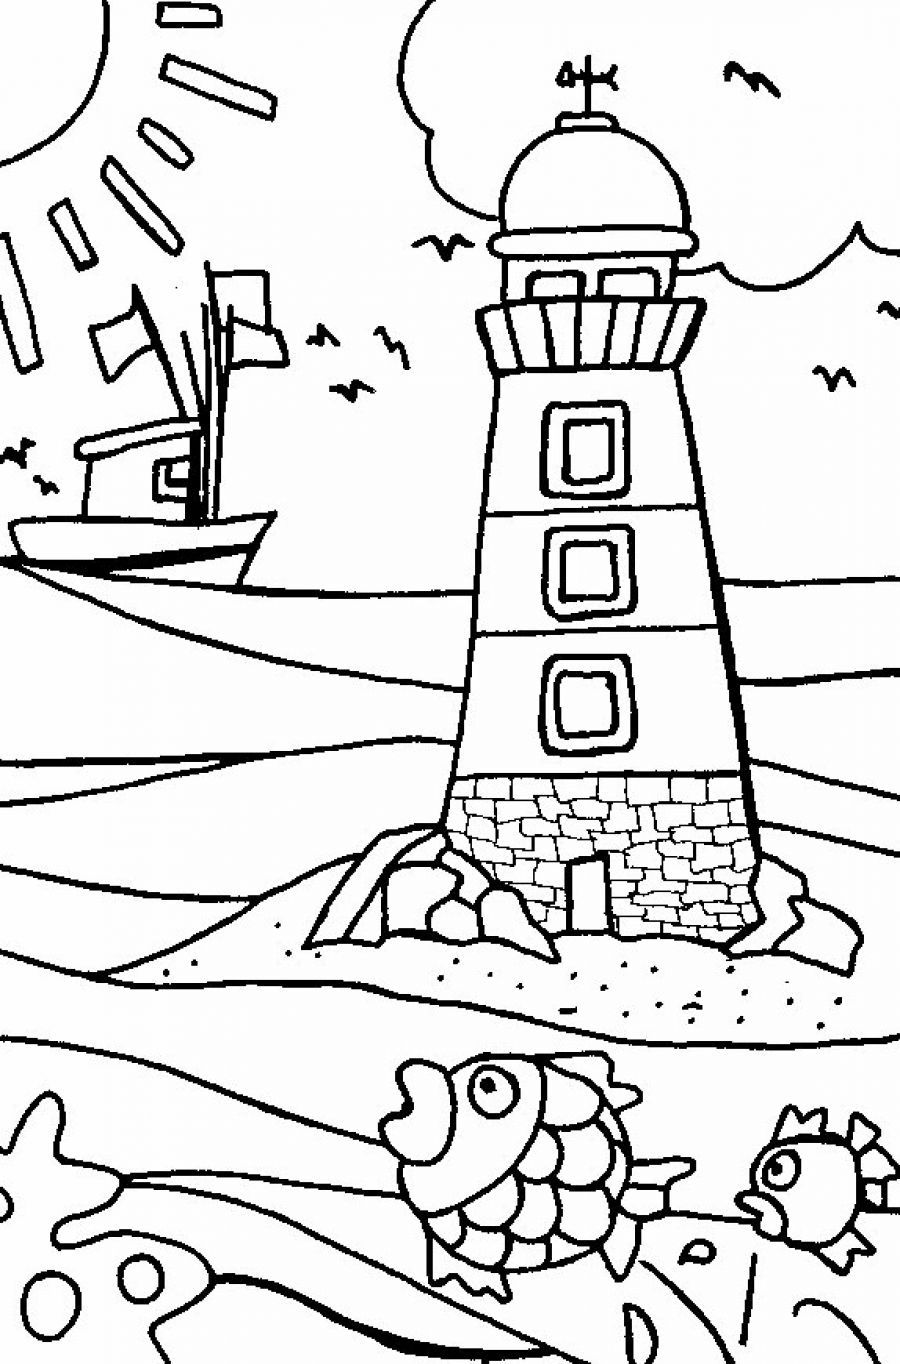 Free coloring pages beach - Beach Coloring Pages For Kids And For Adults